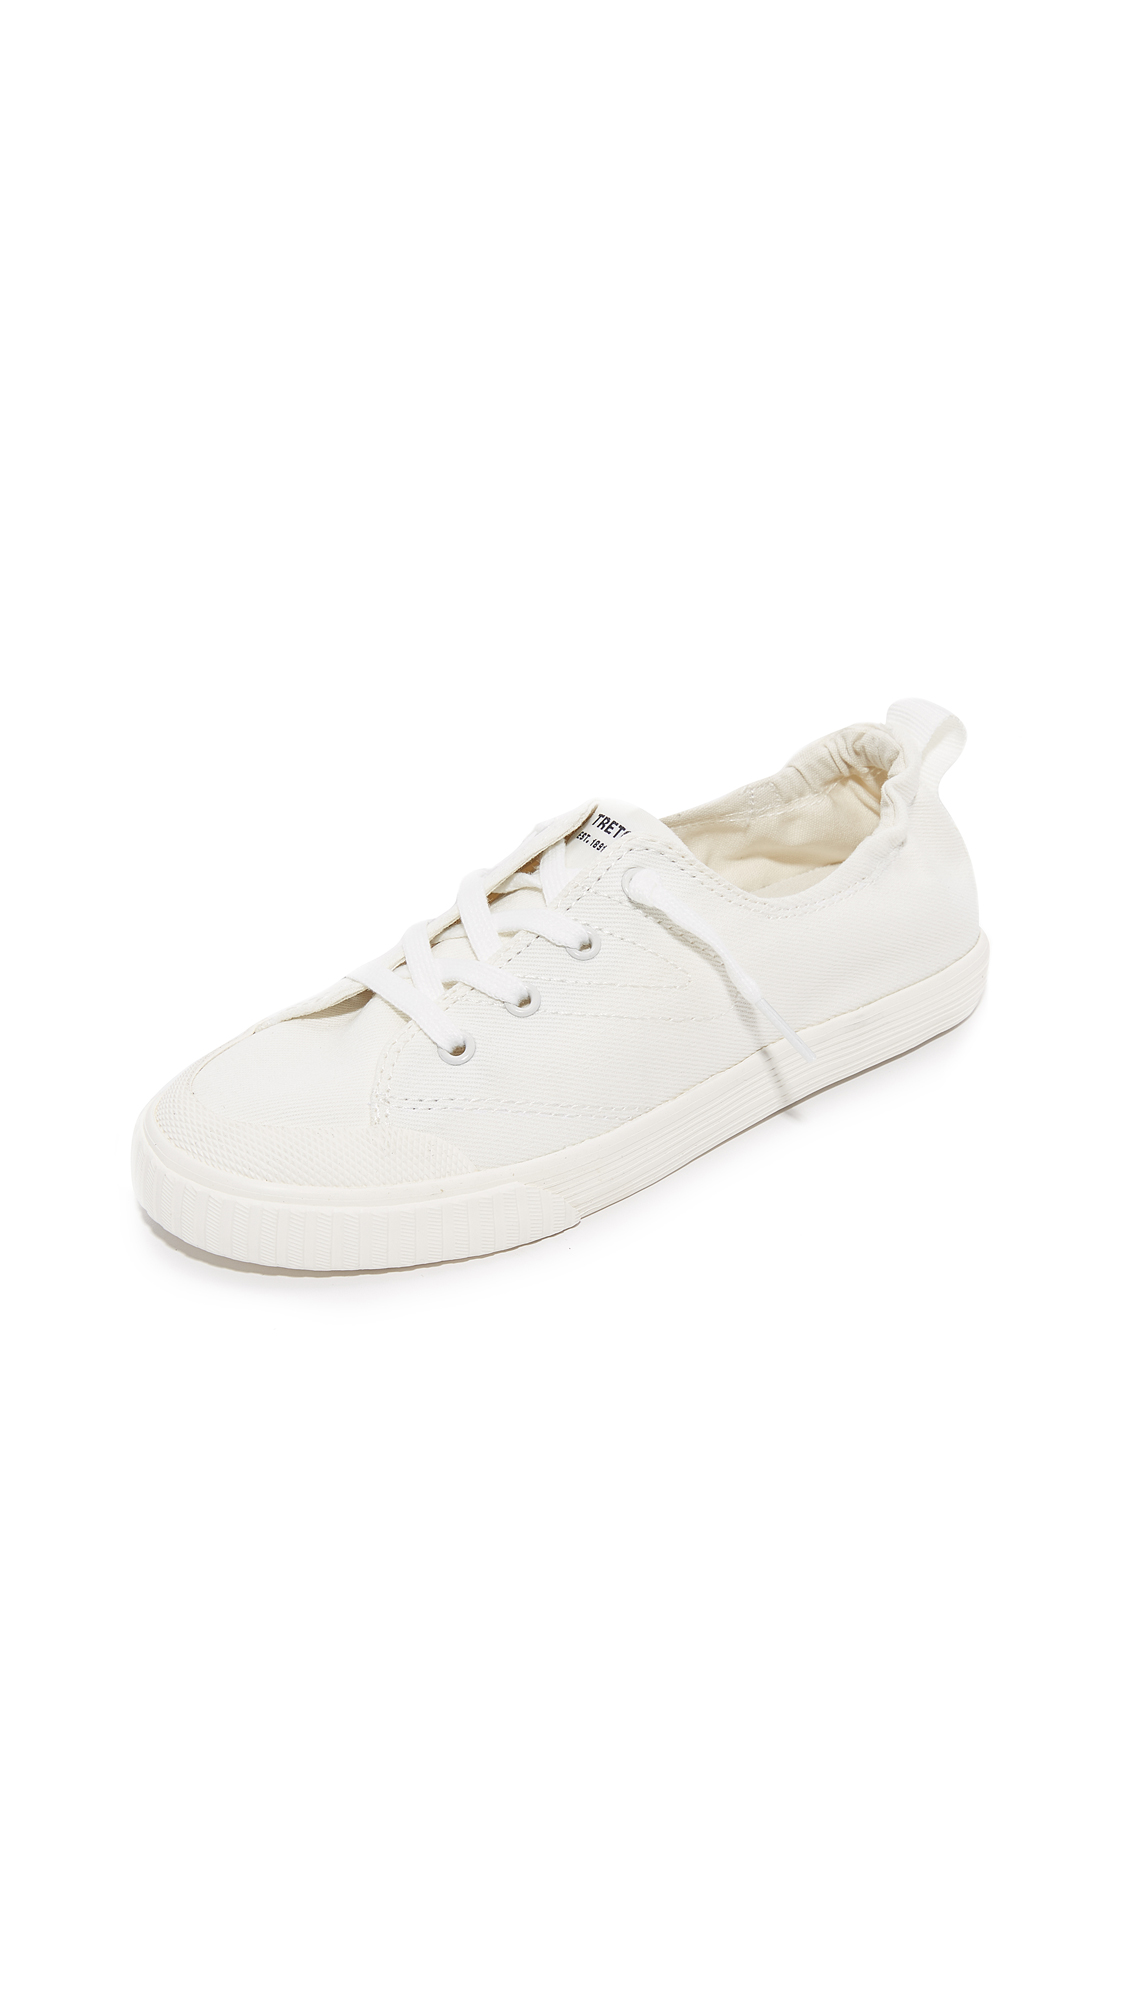 Tretorn Meg Denim Sneakers - Vintage White